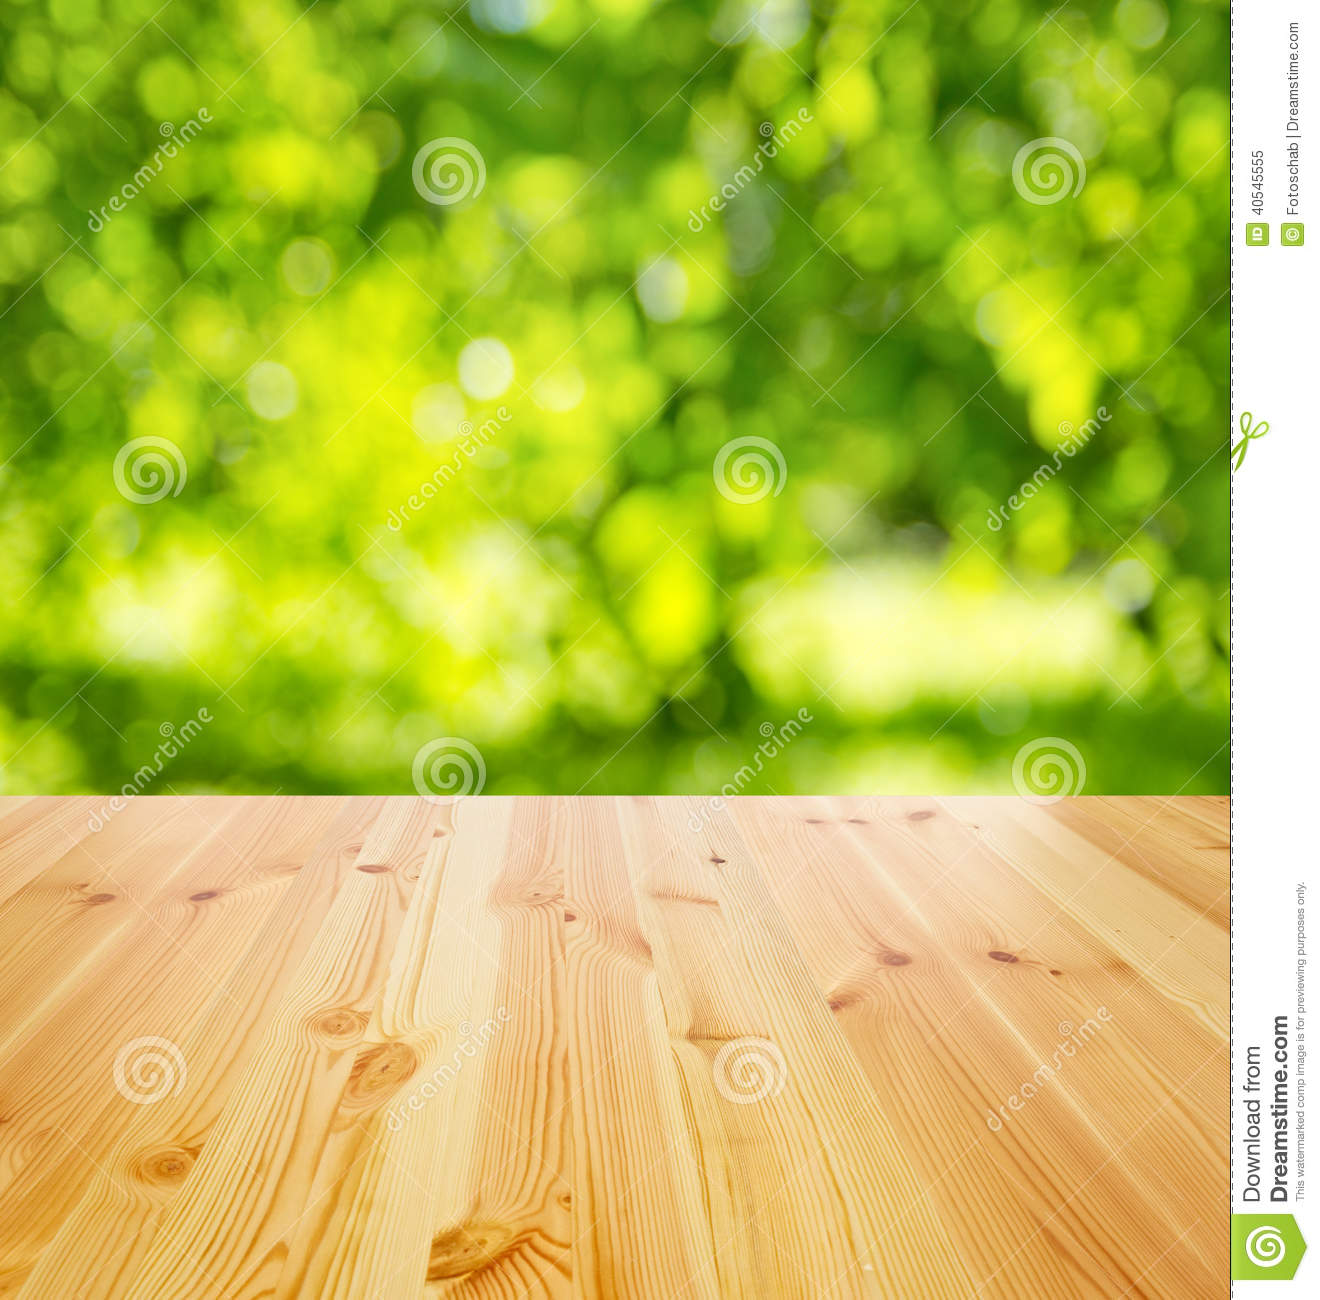 Vegetable Garden In Fall Wallpaper Empty Wooden Table Stock Image Image Of Bokeh Copyspace